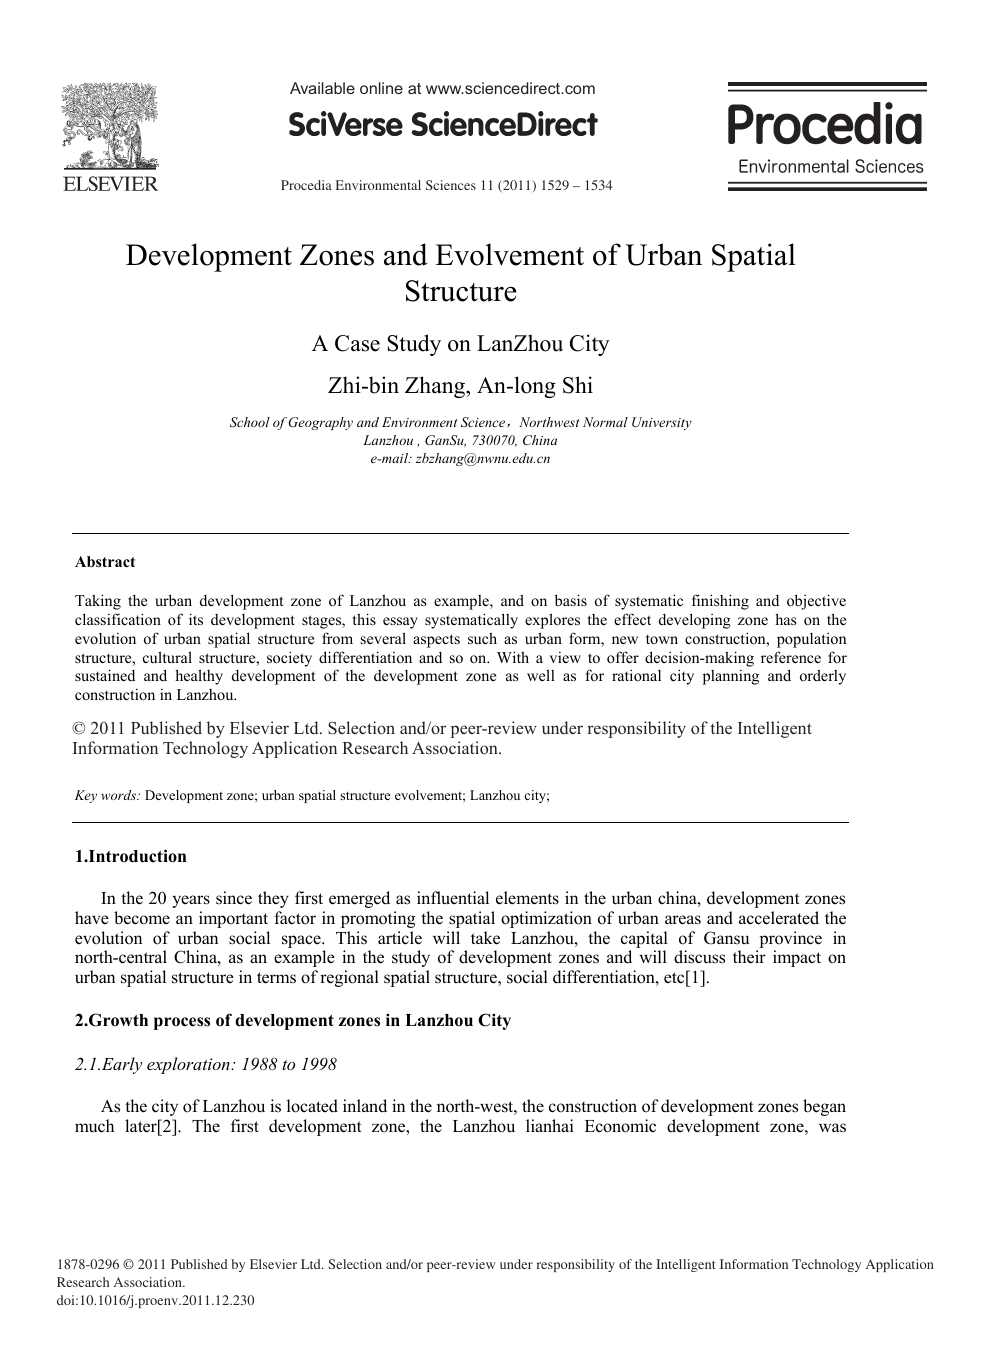 Development Zones and Evolvement of Urban Spatial Structure